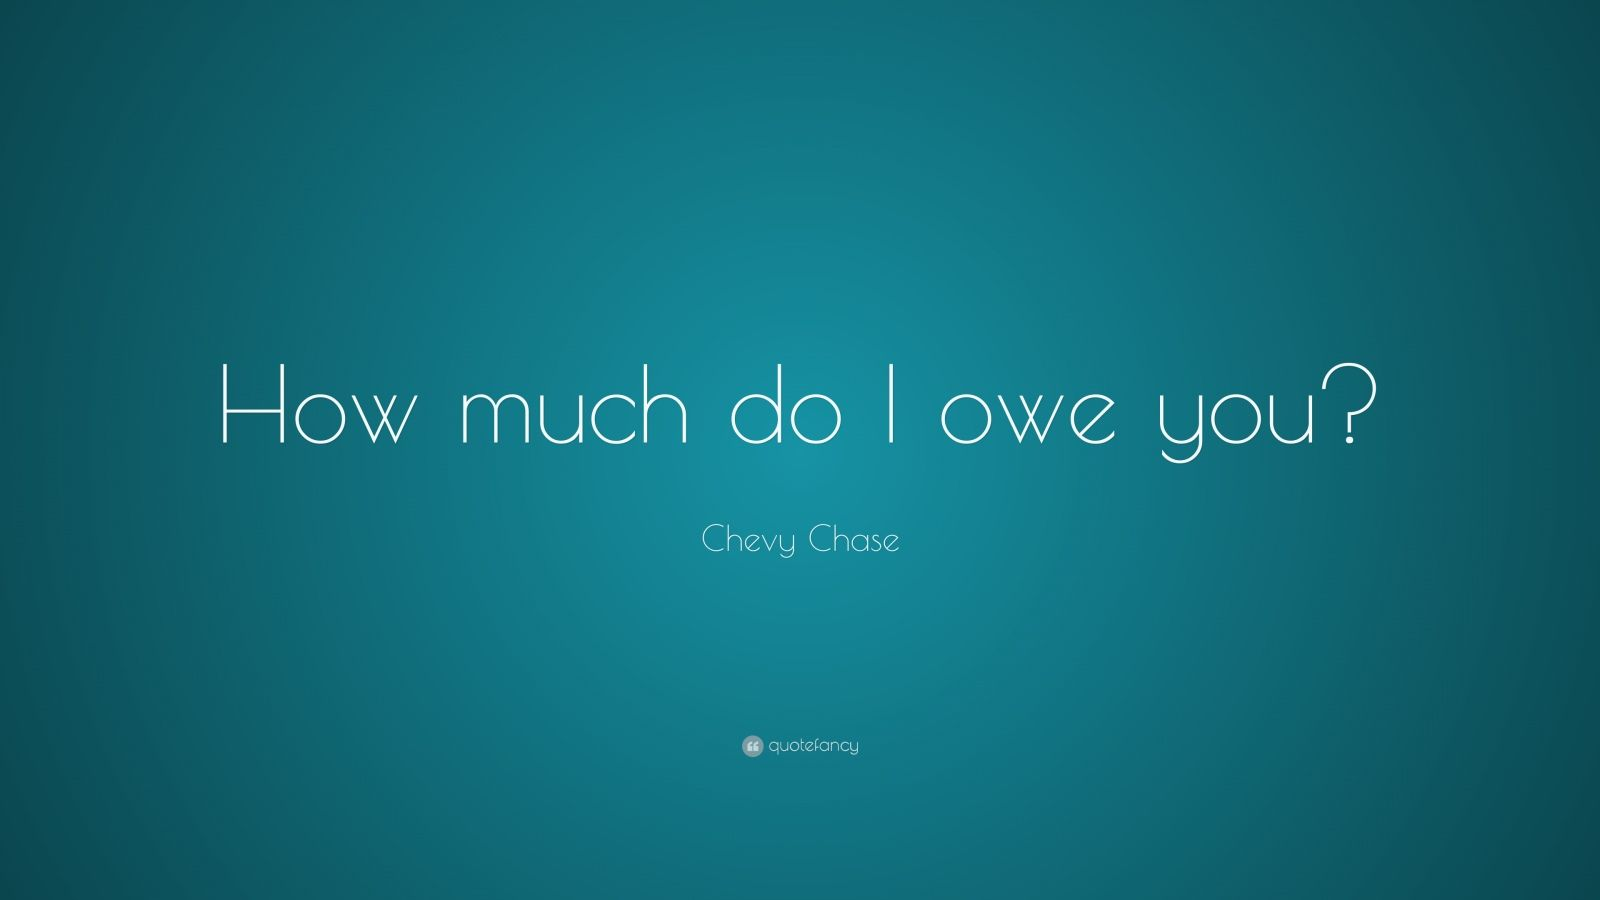 Chevy Chase Quote How much do I owe you 7 wallpapers